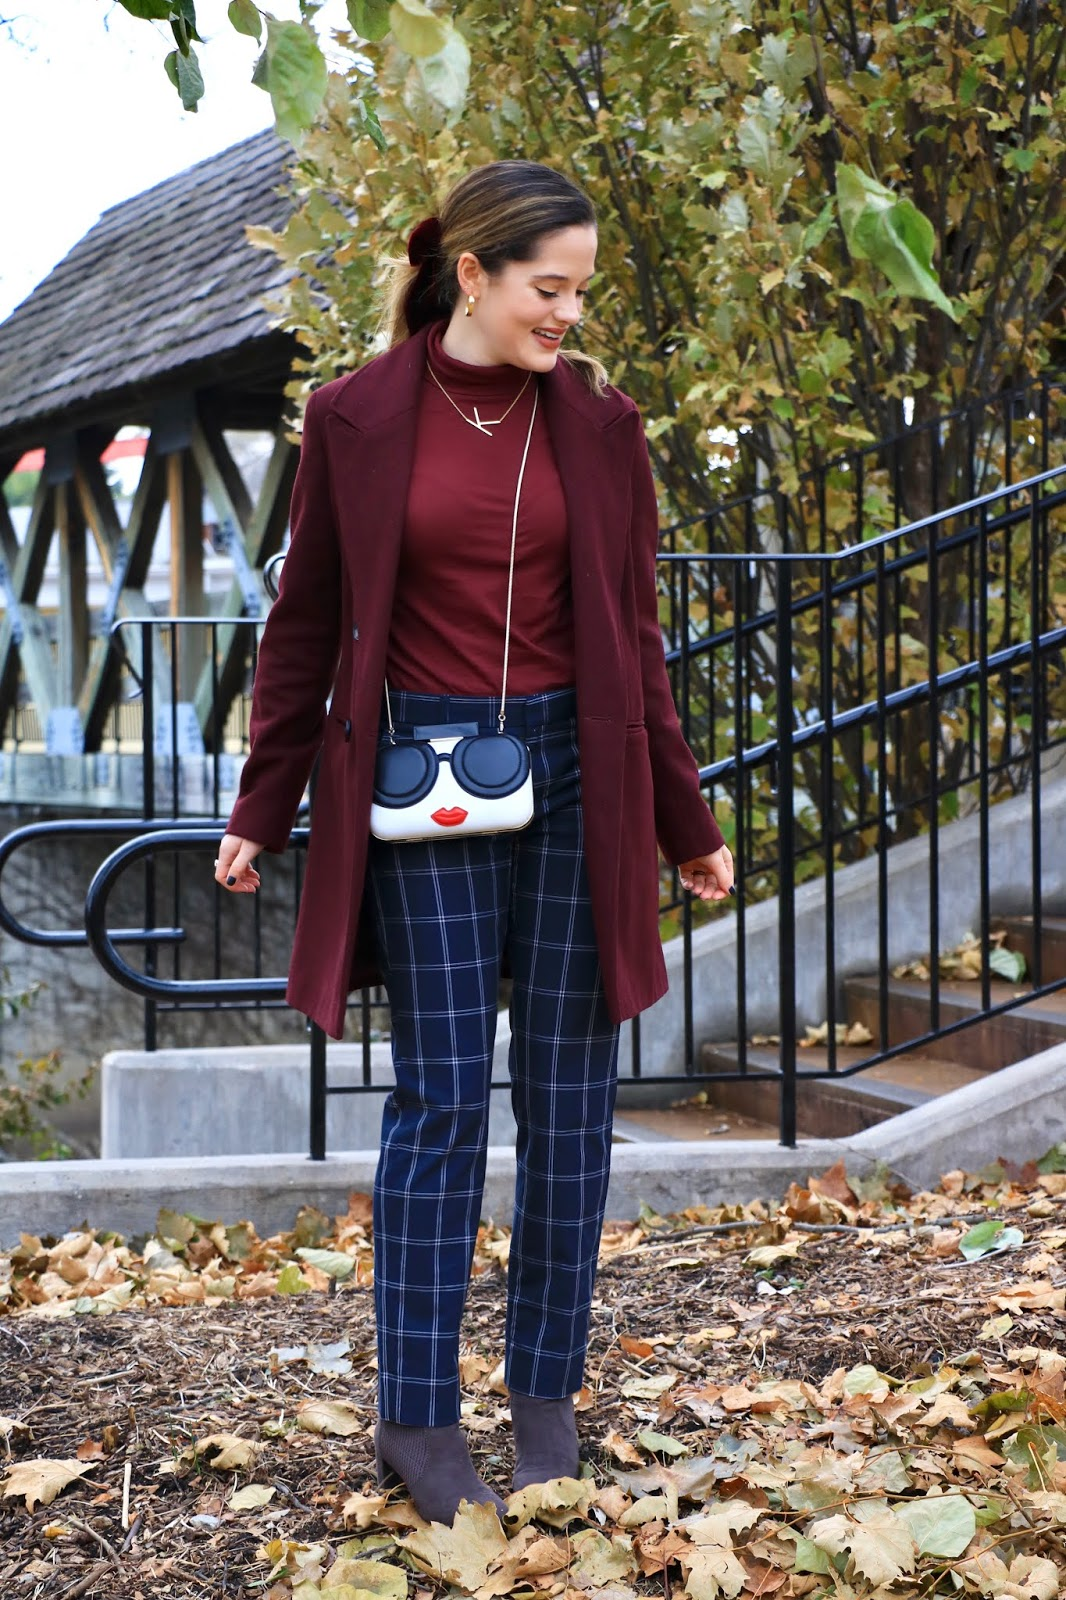 Nyc fashion blogger Kathleen Harper's 2019 fall outfit idea.